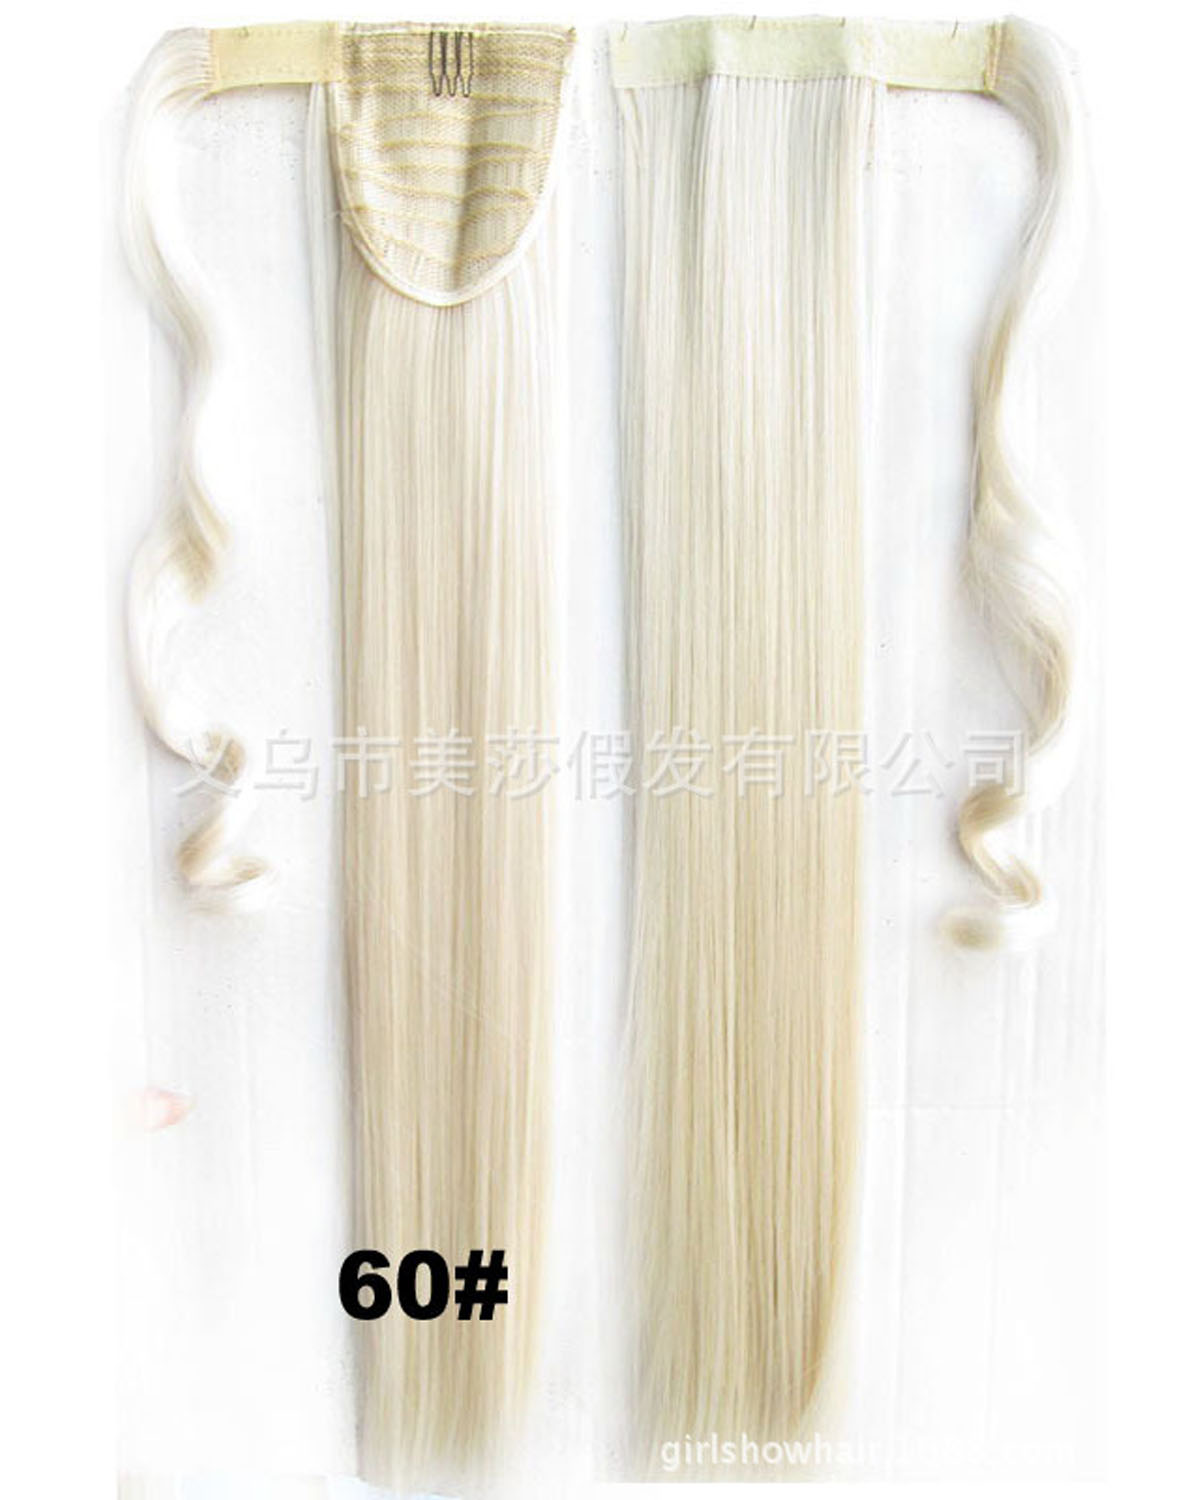 22 Inch Women Pretty Straight and Long Wrap Around Synthetic Hair Ponytail 60#